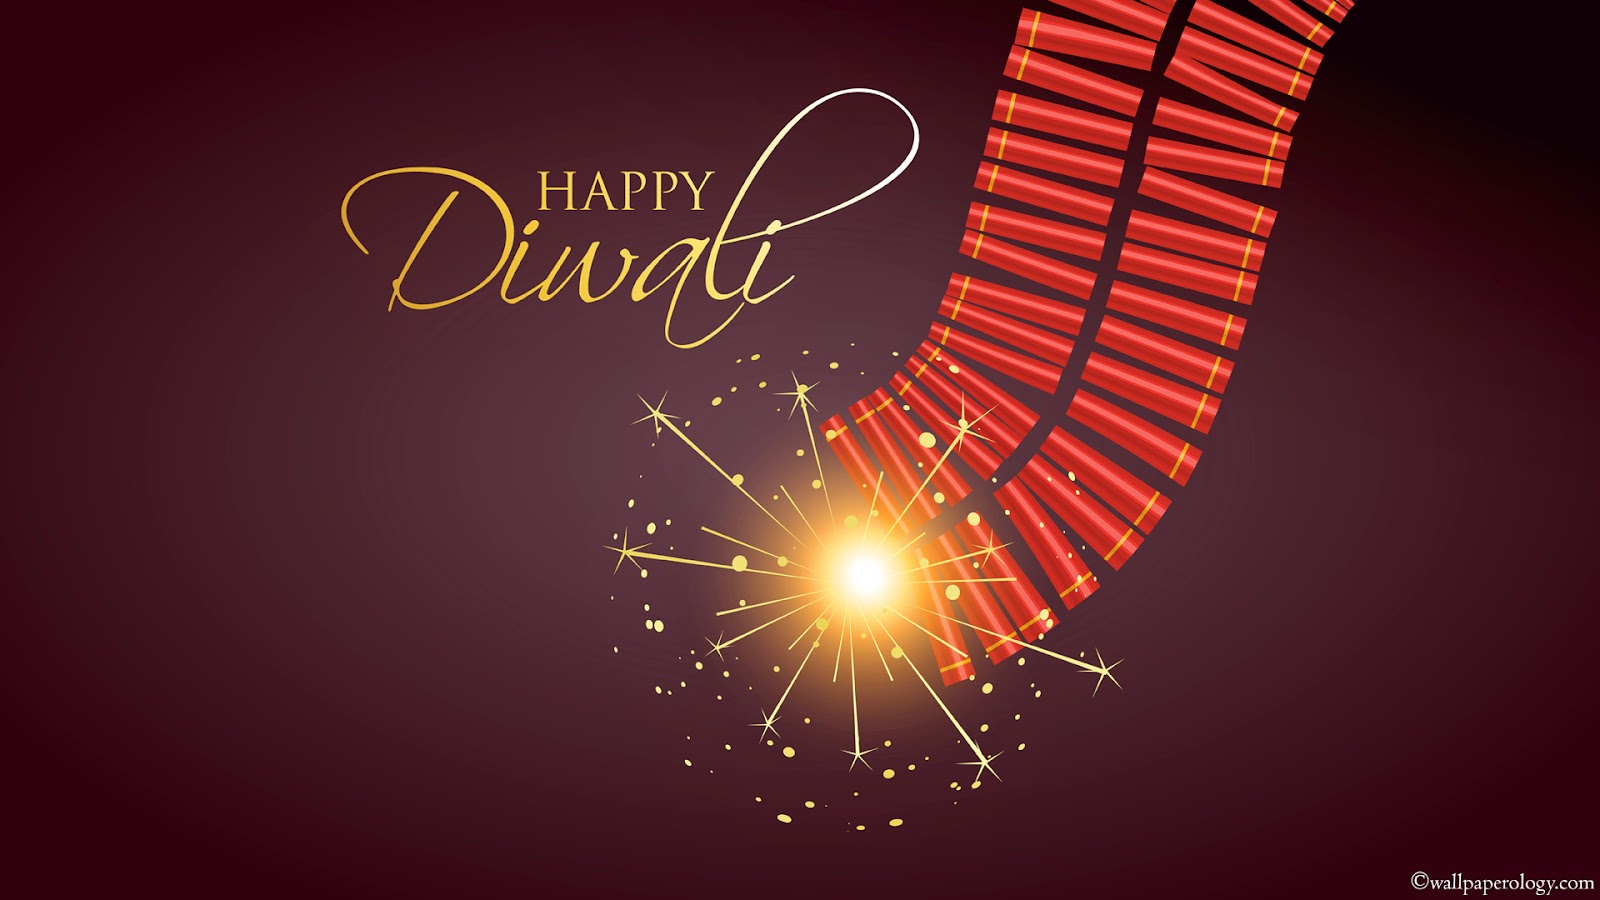 Happy diwali images and Hd wallpapers